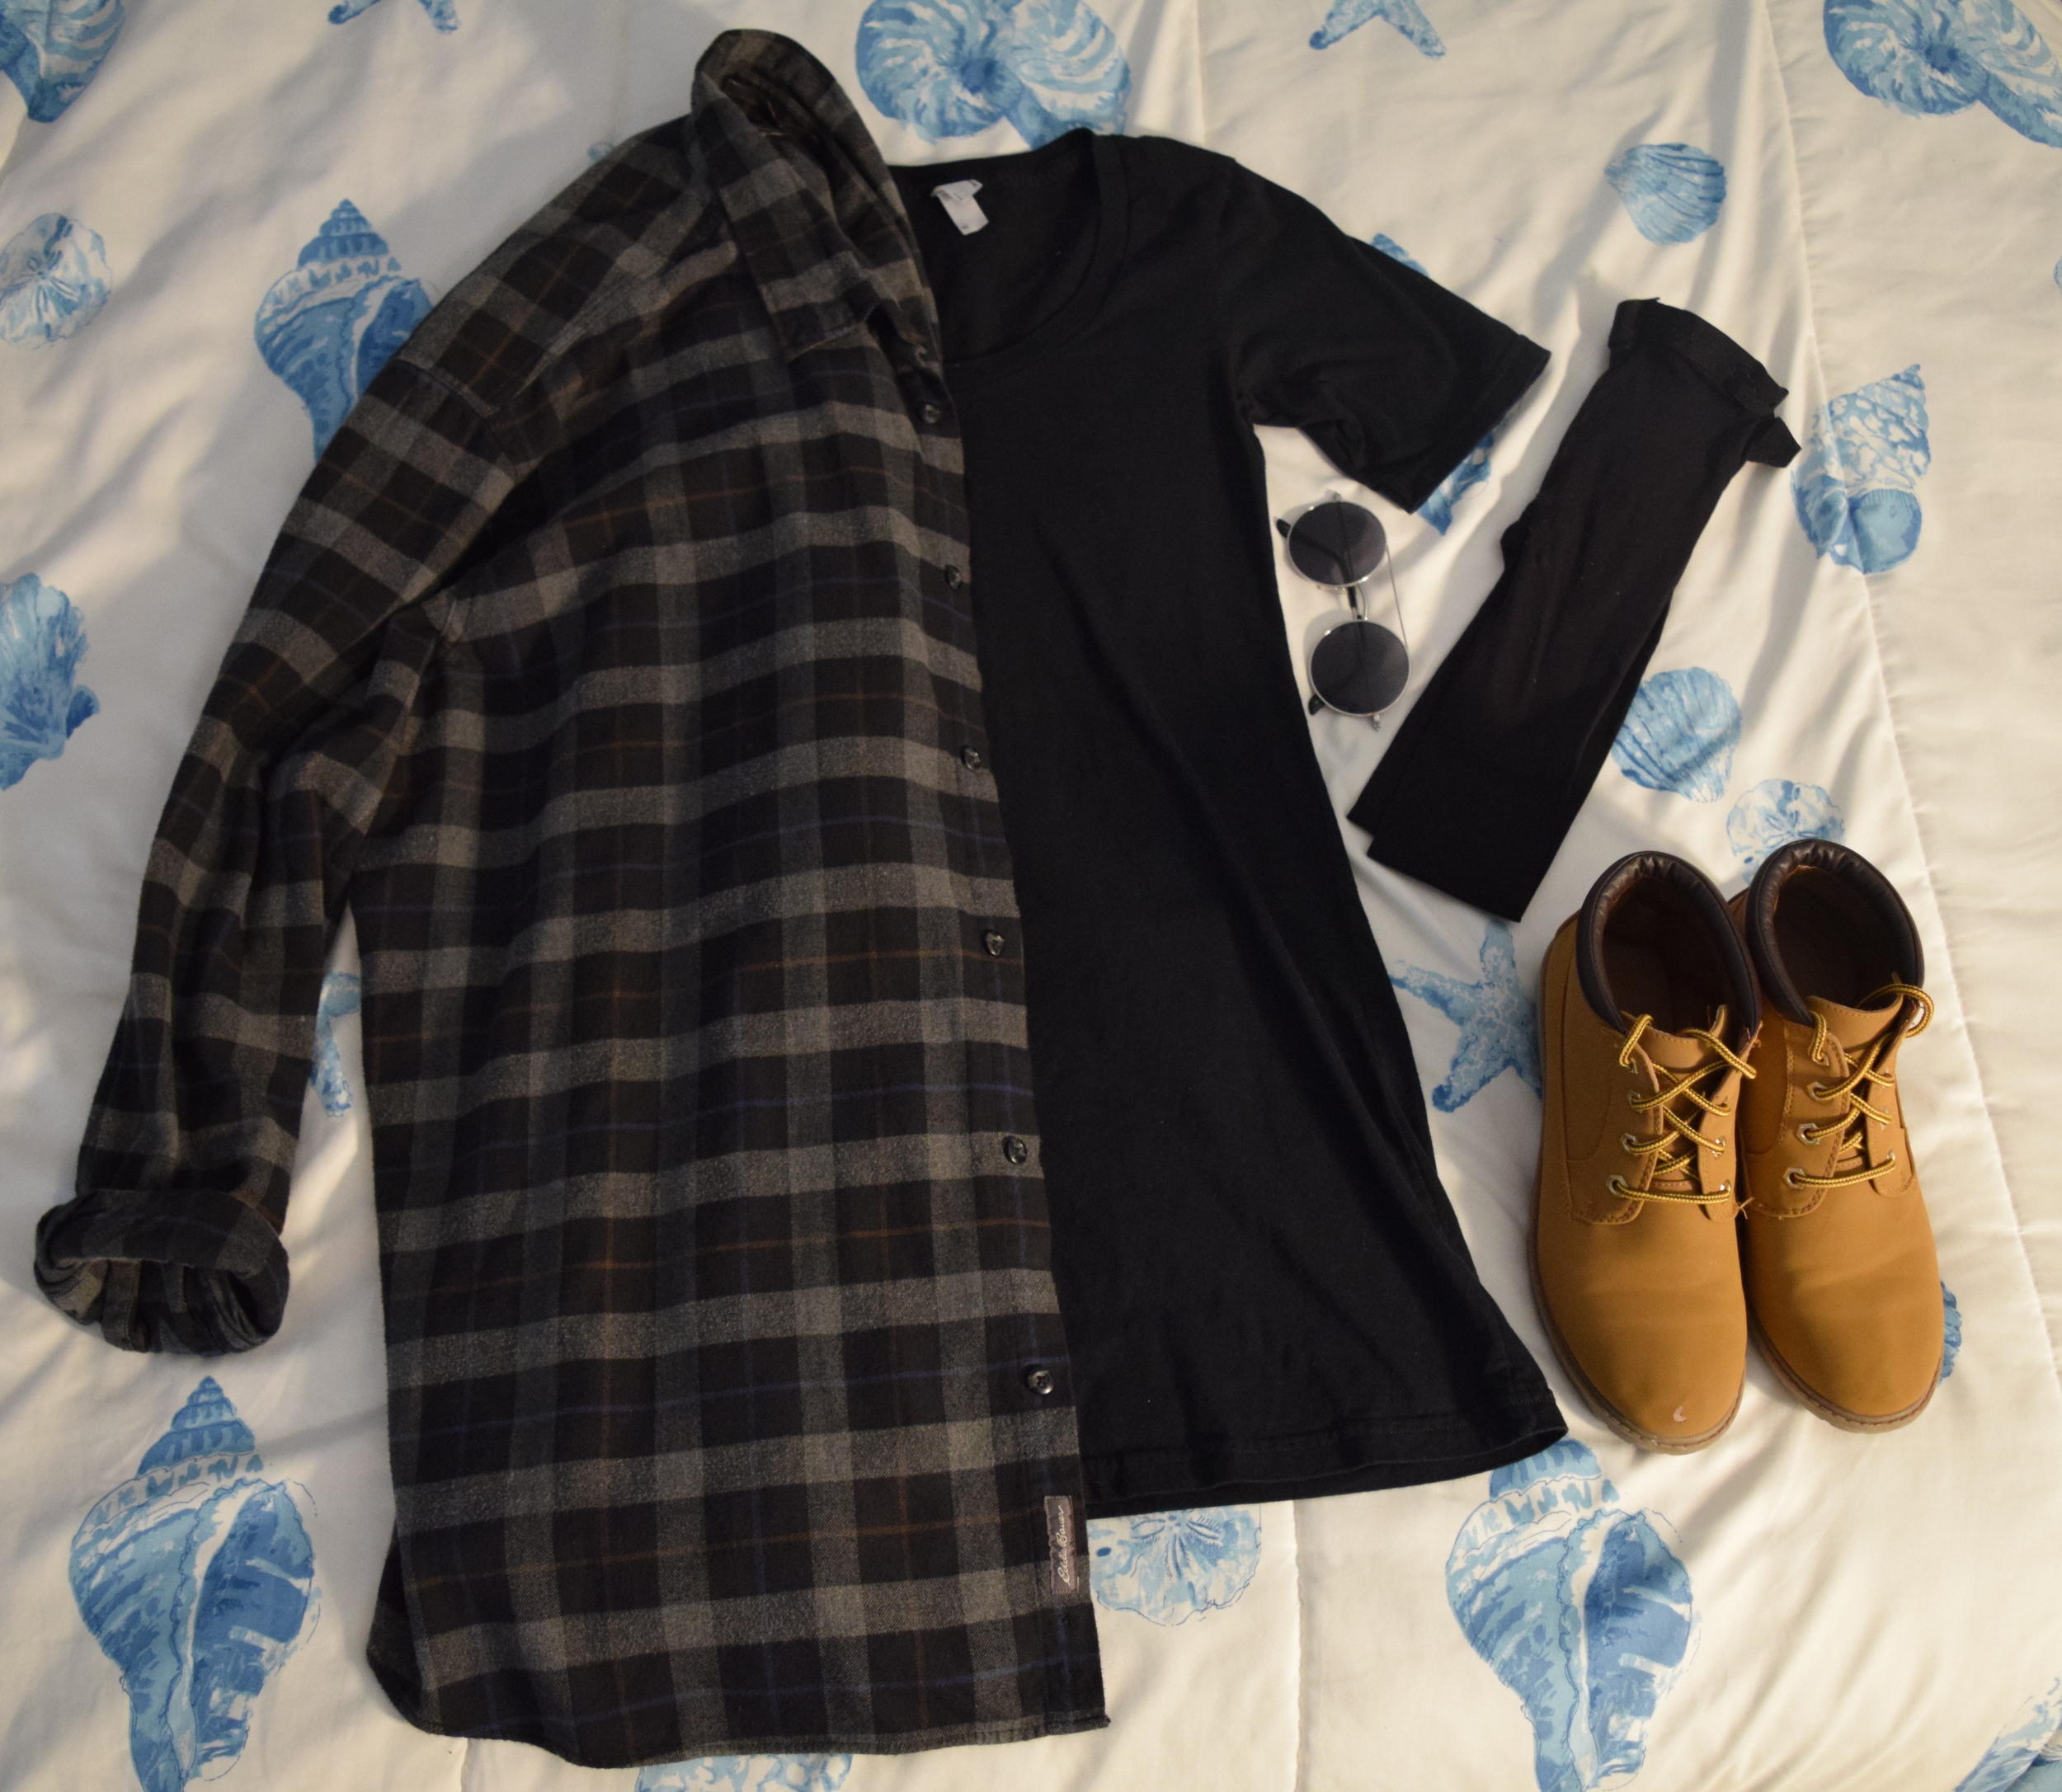 Flannel (it's from  Eddie Bauer  I just can't find the exact shirt).  Dress . Boots (aren't being sold anymore  :(  ).  Tights .  Sunglasses  (similar)